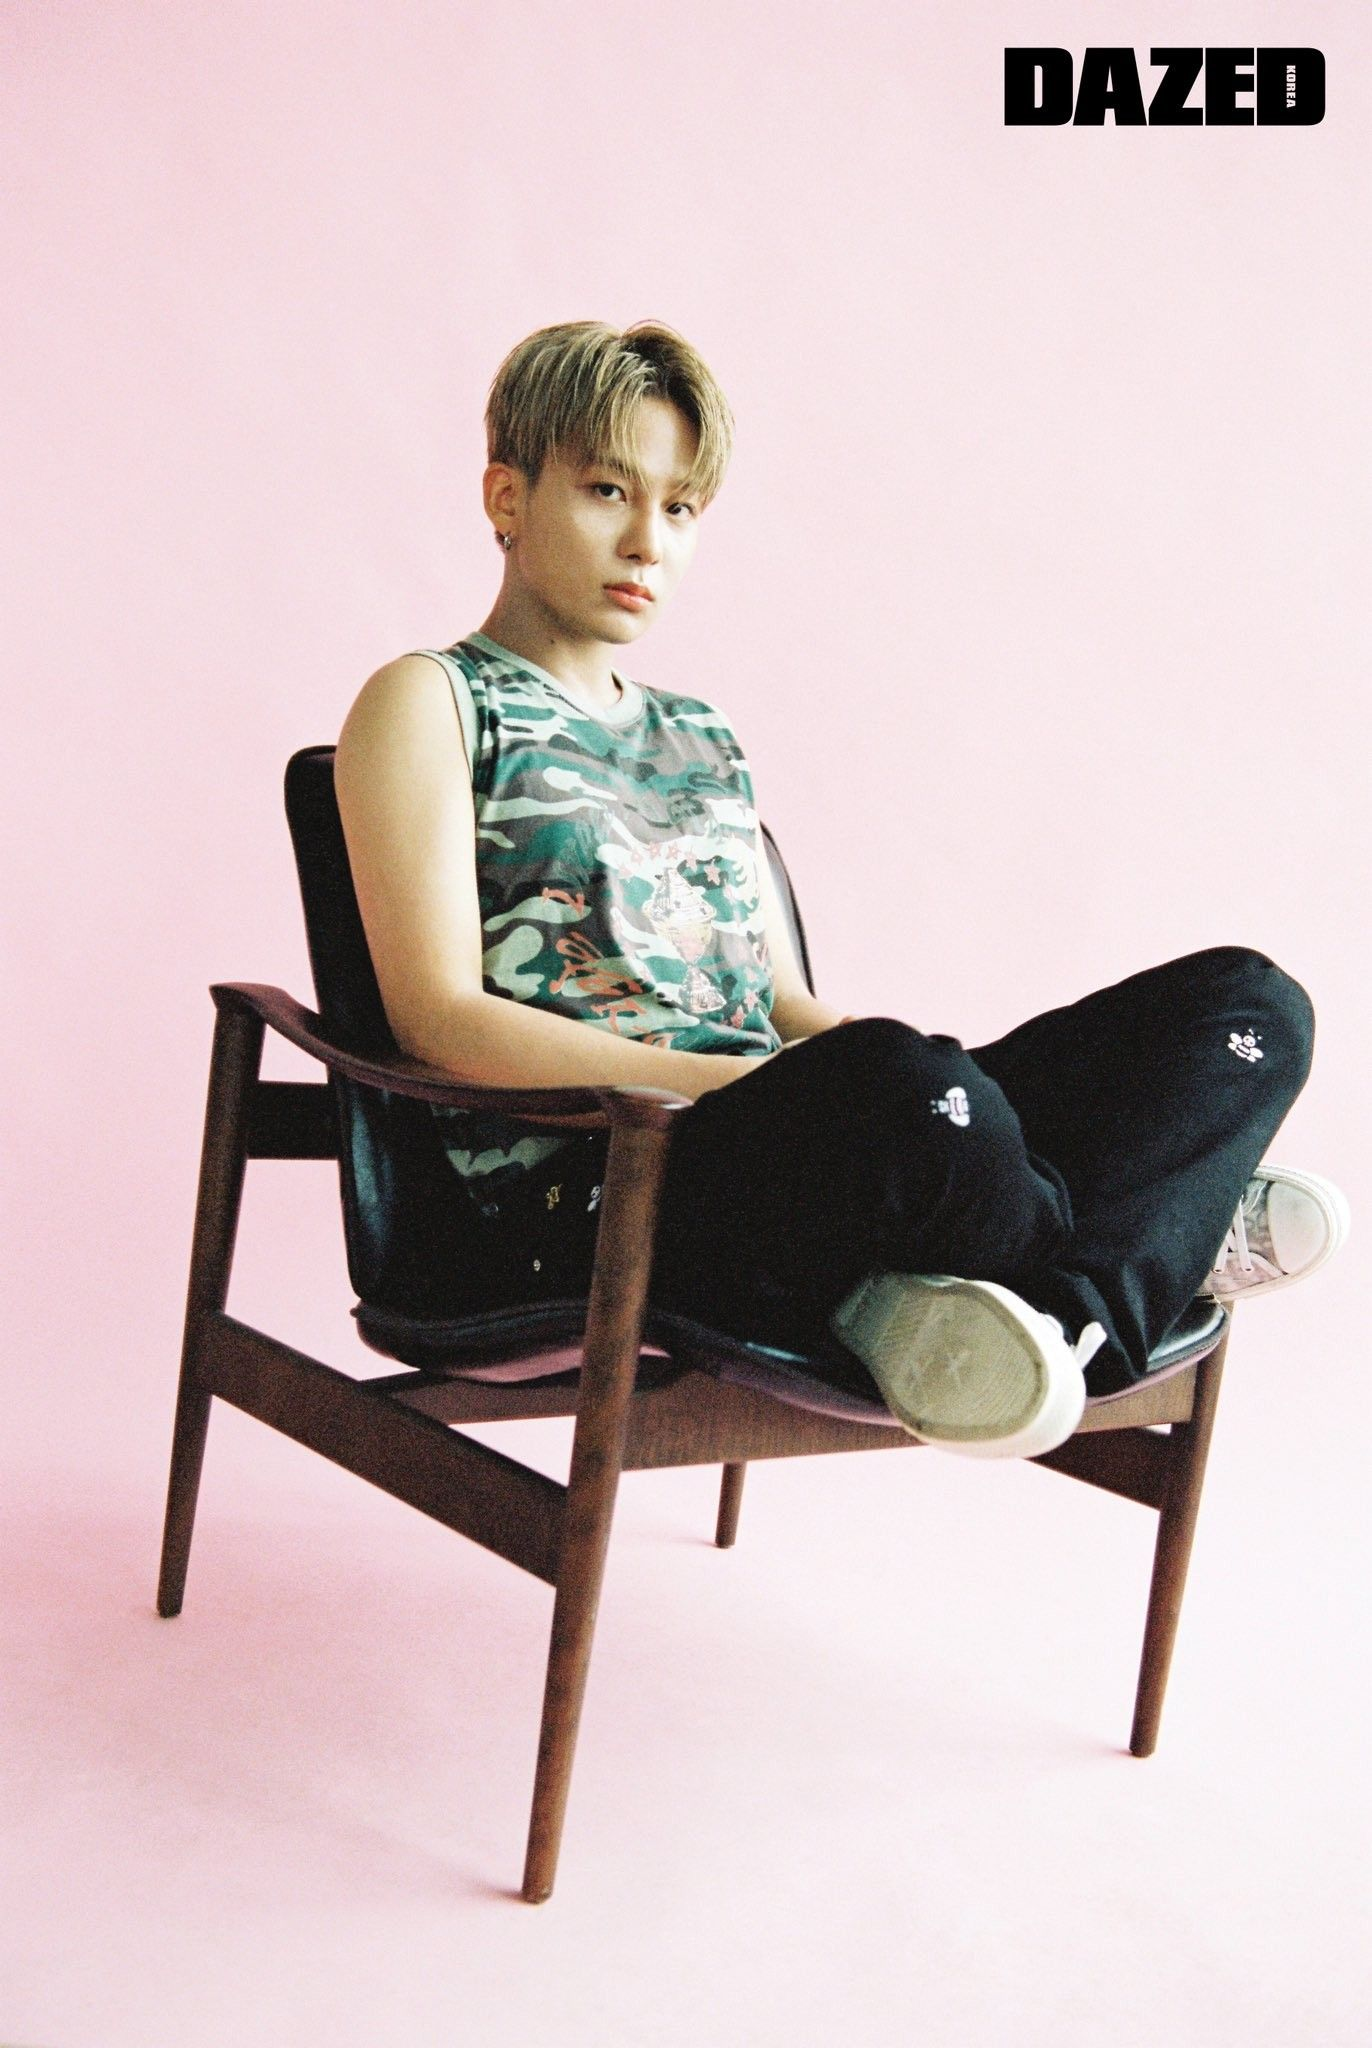 Pin By Redheart Moon On Ateez Photoshoot Pose Boy Photoshoot Jung Woo Young